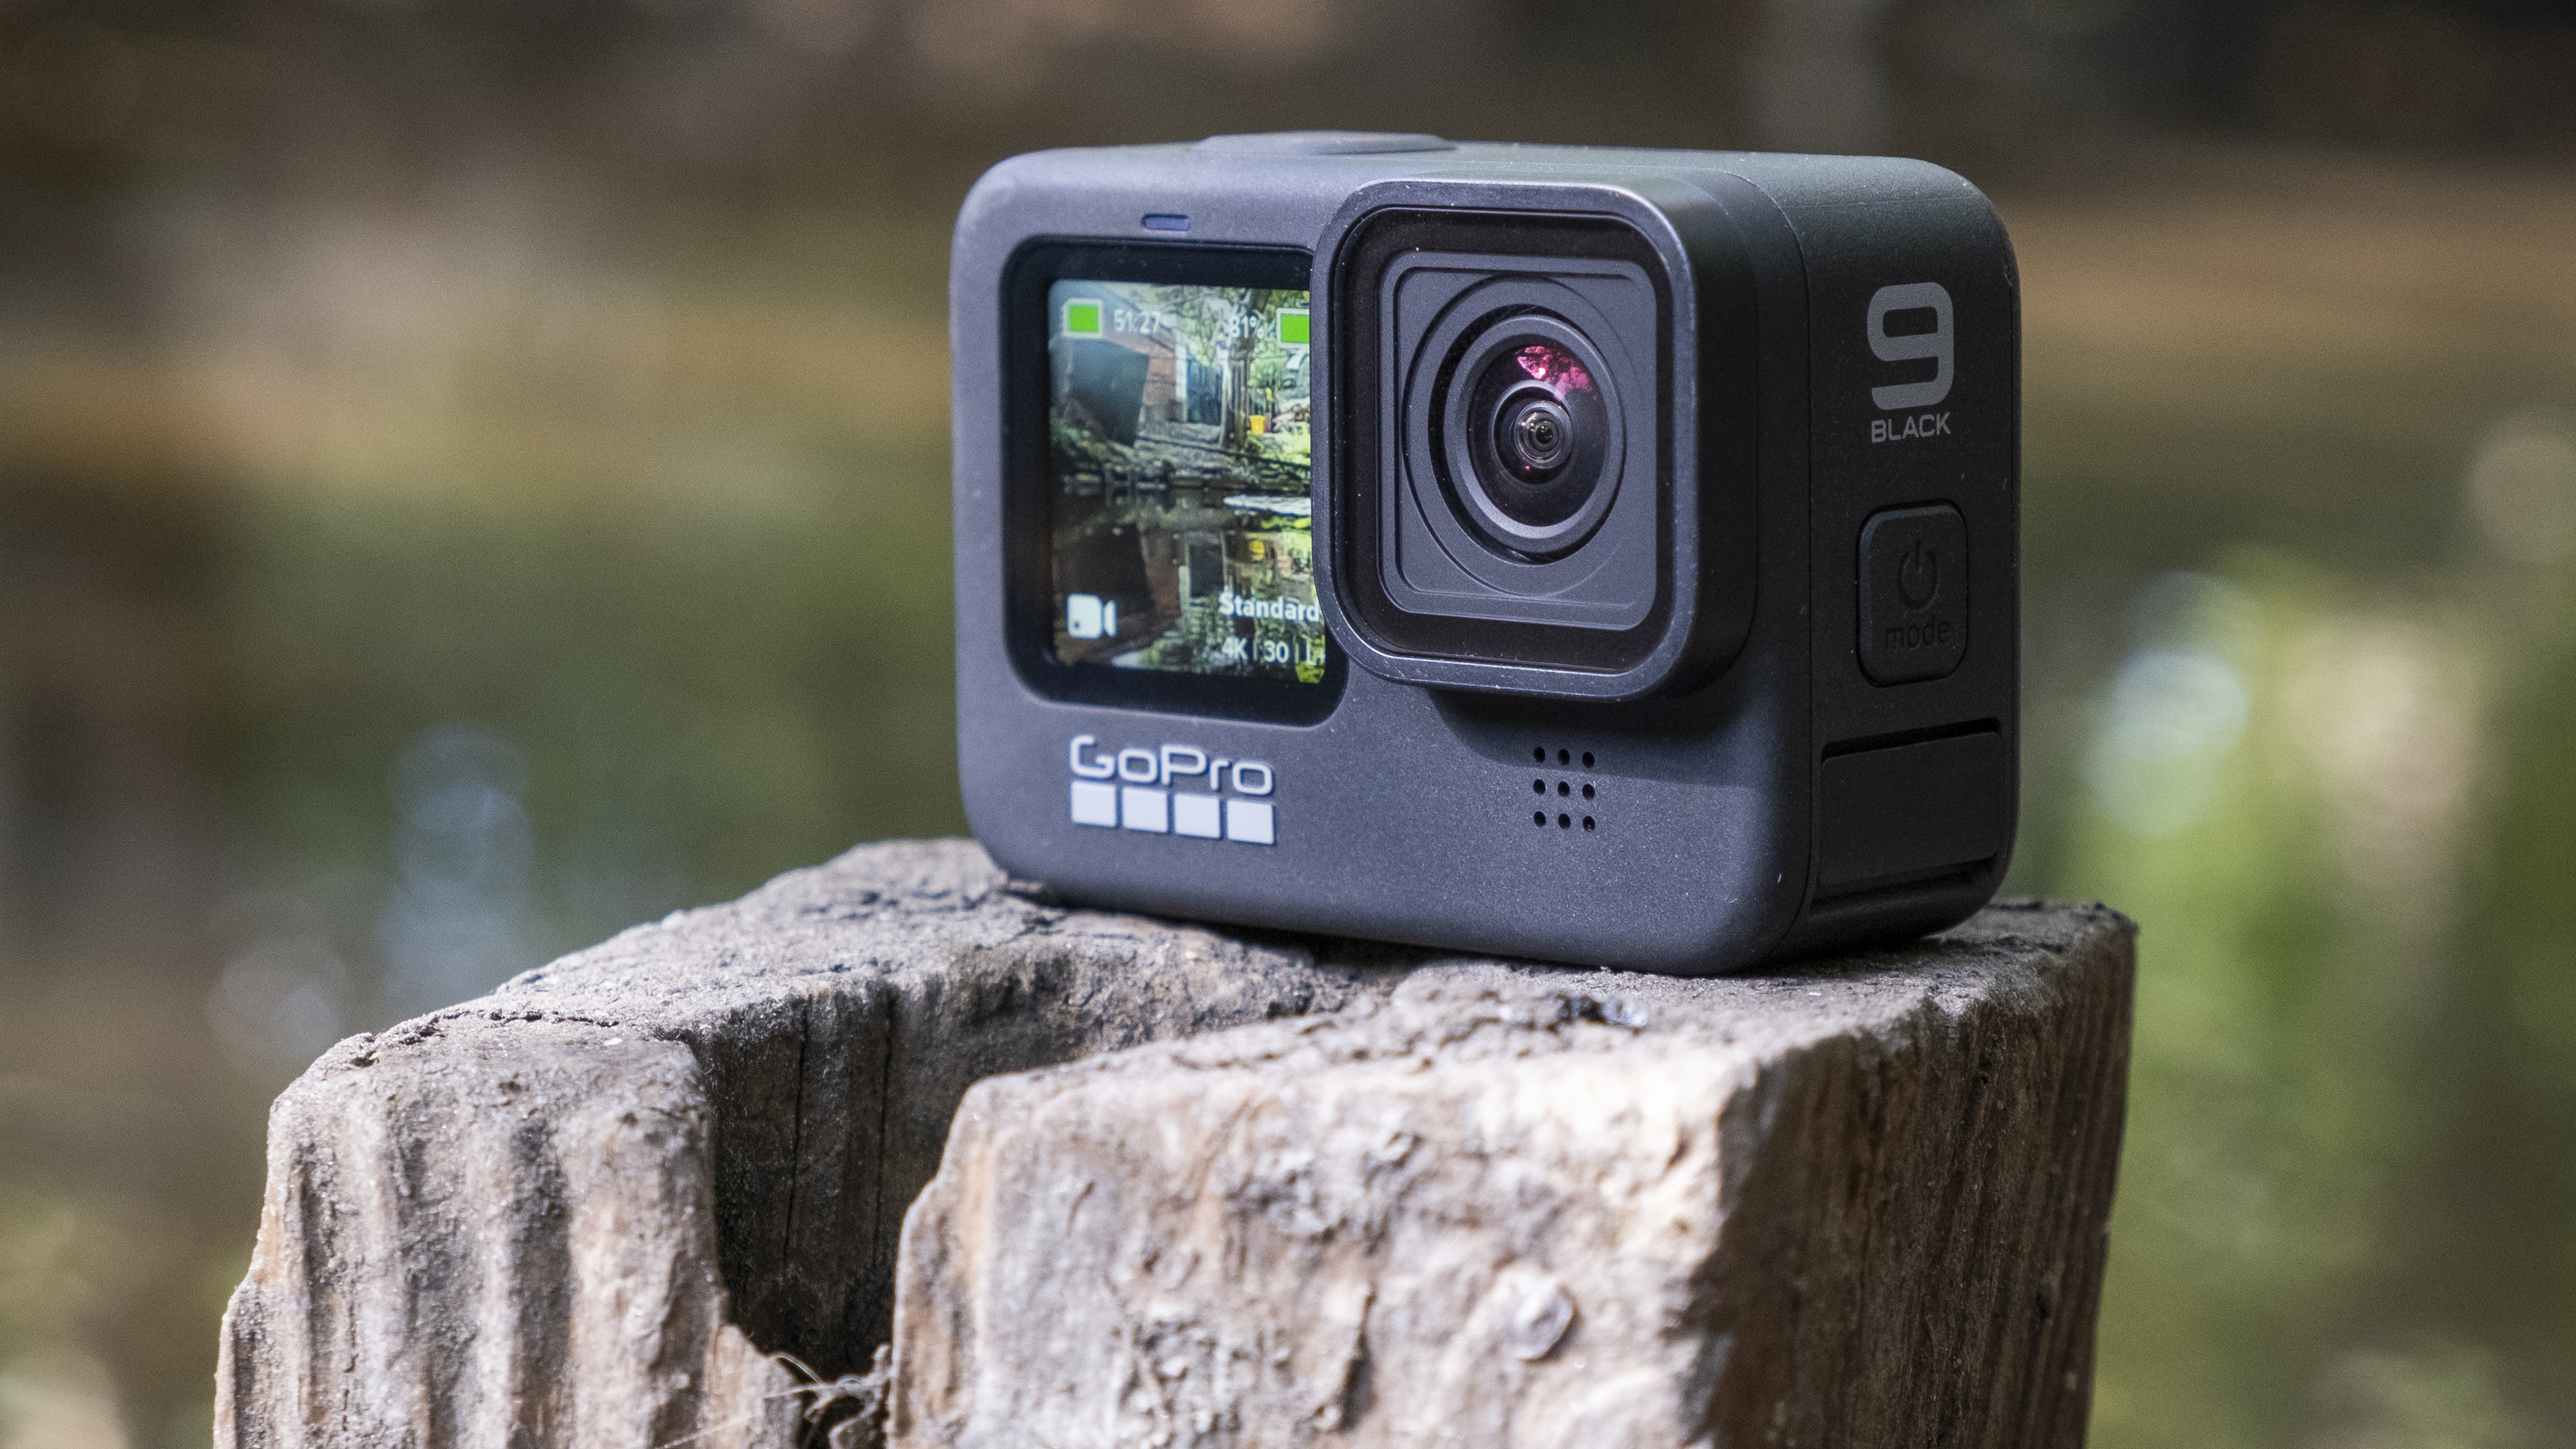 Best Action Camera 2021 The 10 Top Rugged Cameras For Video Adventures Techradar